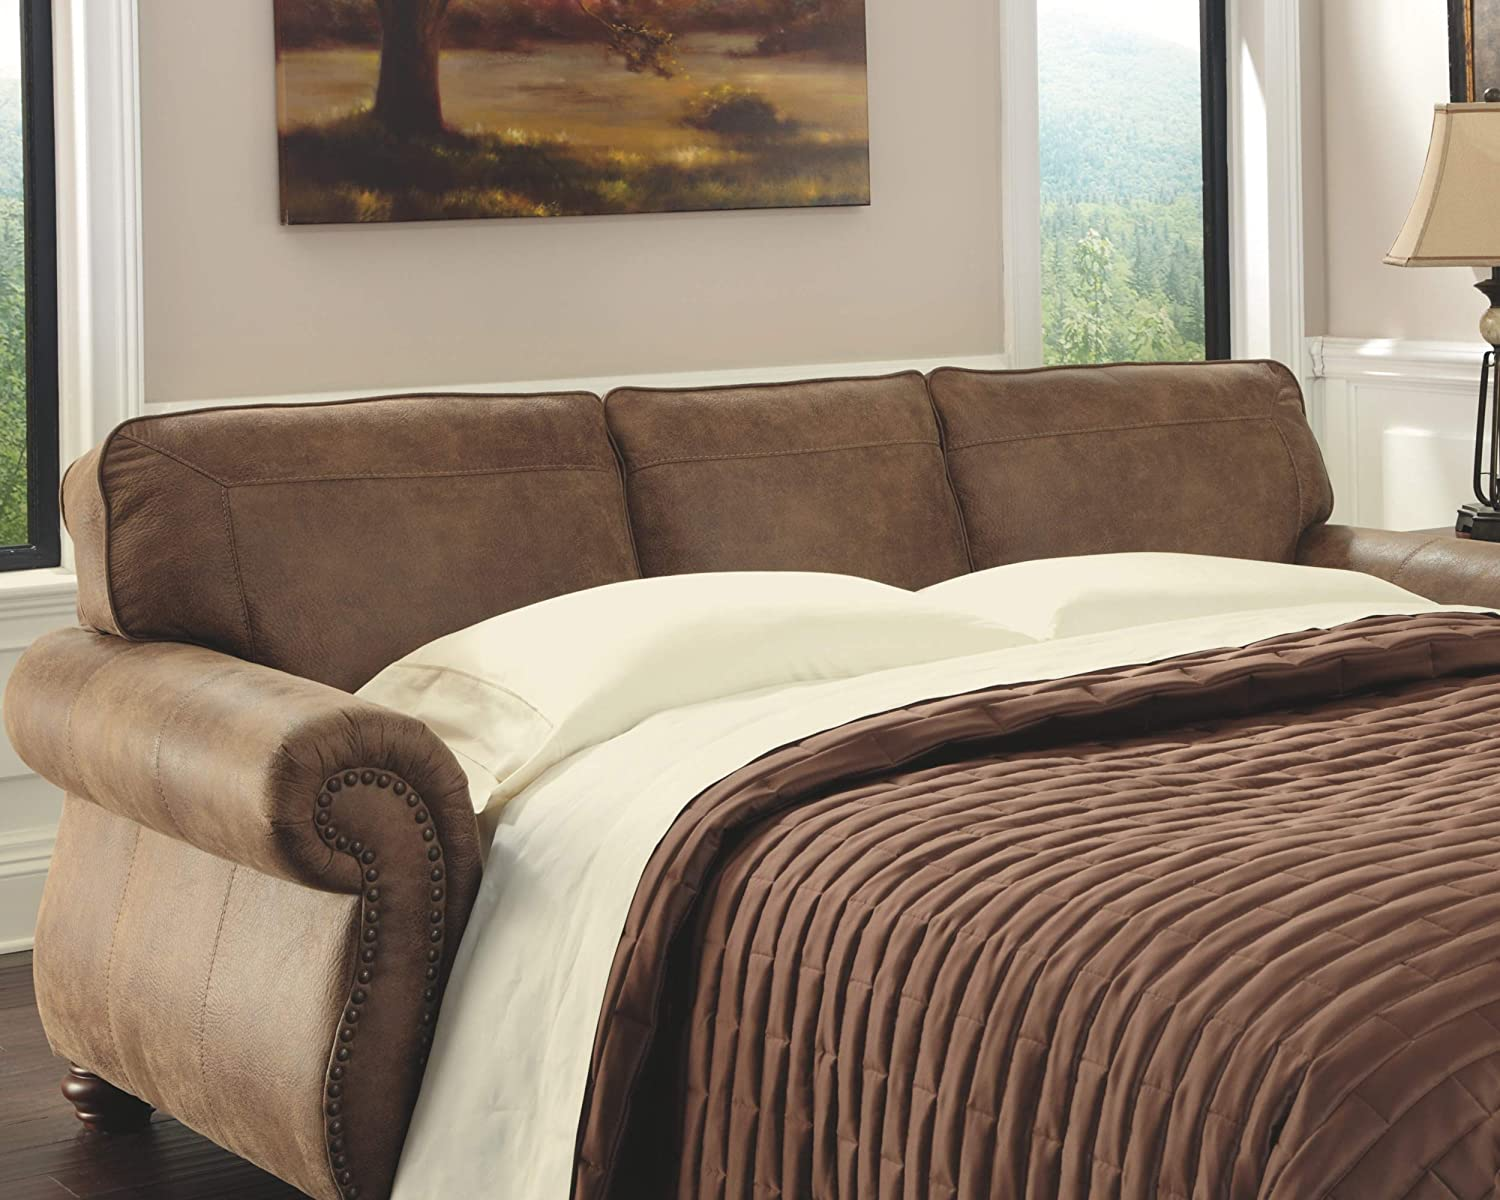 Top 8 Best Comfortable Sofa Beds for Daily Use [ Expert's Choice - 2021] 6